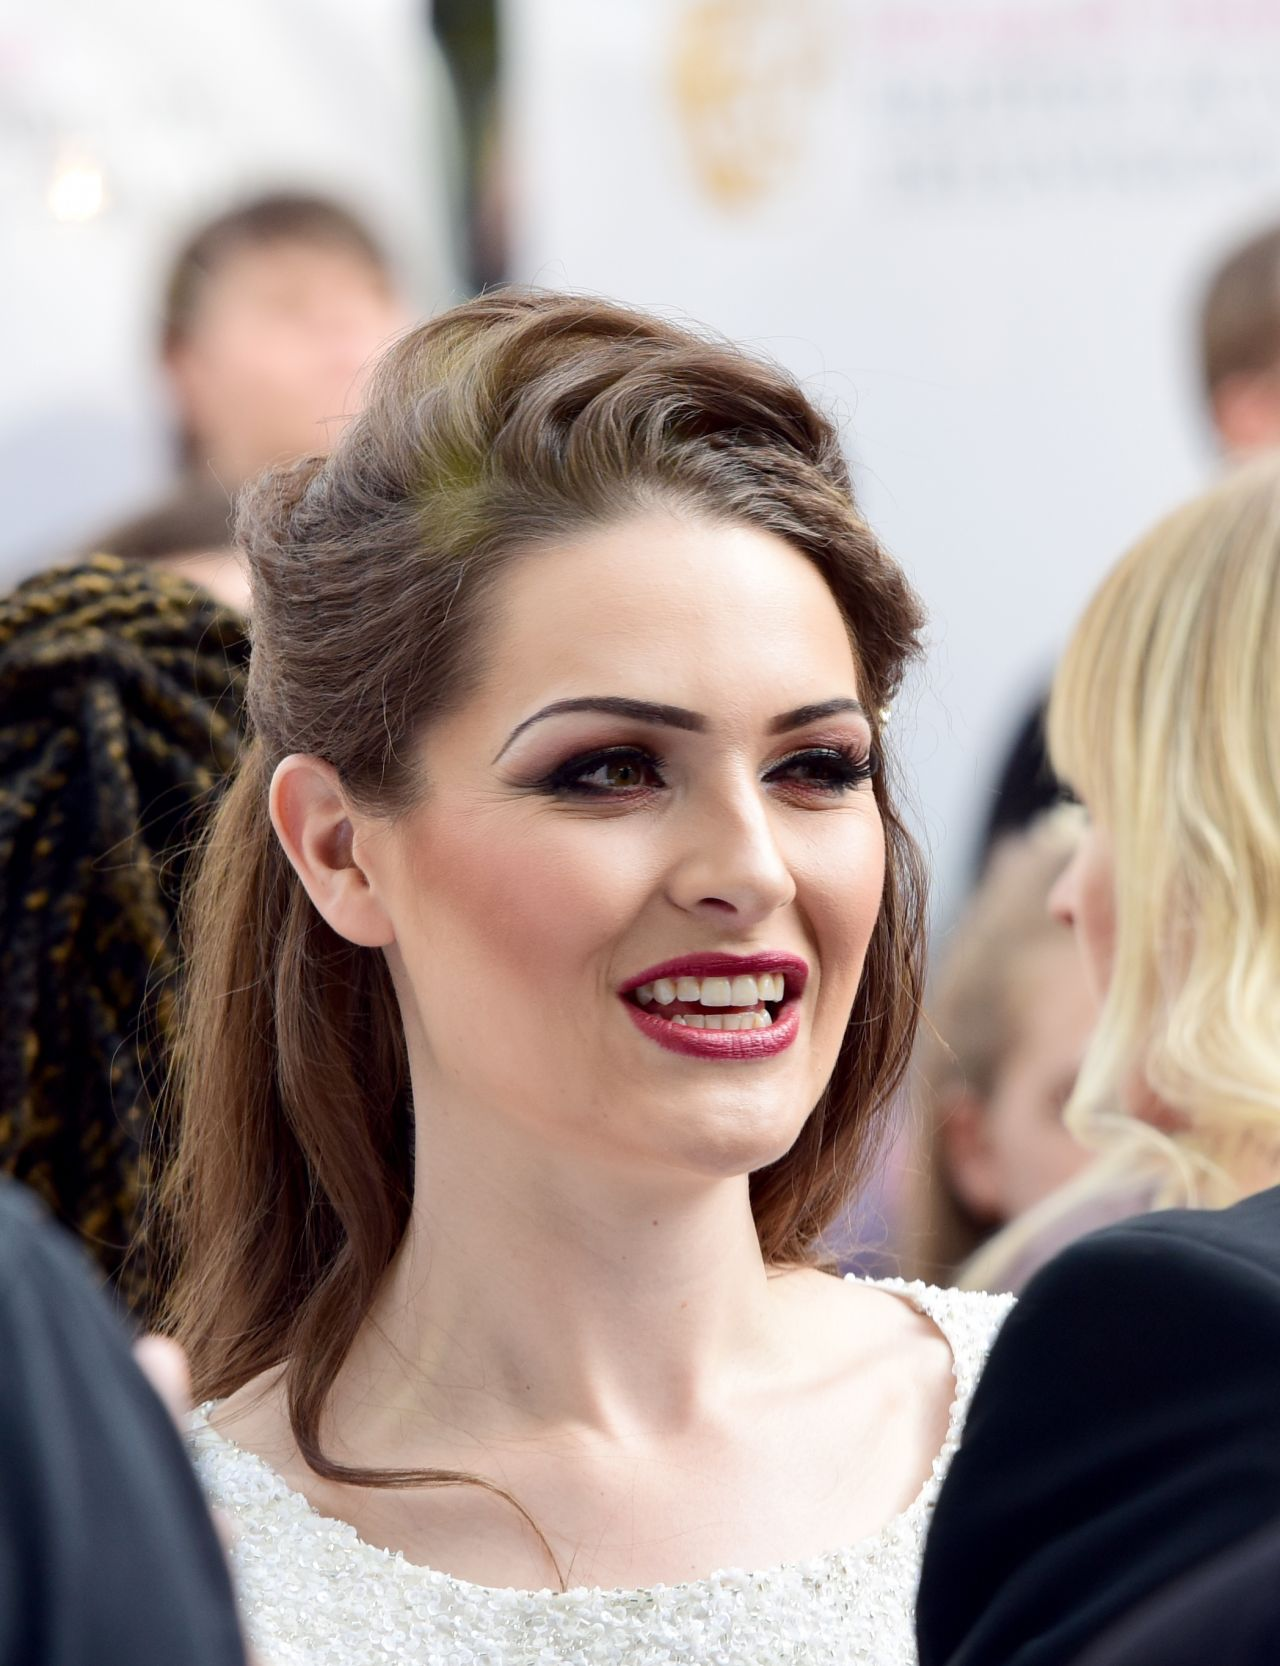 anna passey wikianna passey wiki, anna passey, anna passey boyfriend, anna passey and nick rhys, anna passey instagram, anna passey age, anna passey feet, anna passey twitter, anna passey the smoke, anna passey hot, anna passey dating, anna passey and charlie clapham, anna passey hollyoaks, anna passey bikini, anna passey and nick rhys together, anna passey height, anna passey pregnant, anna passey and matt di angelo, anna passey bio, anna passey partner